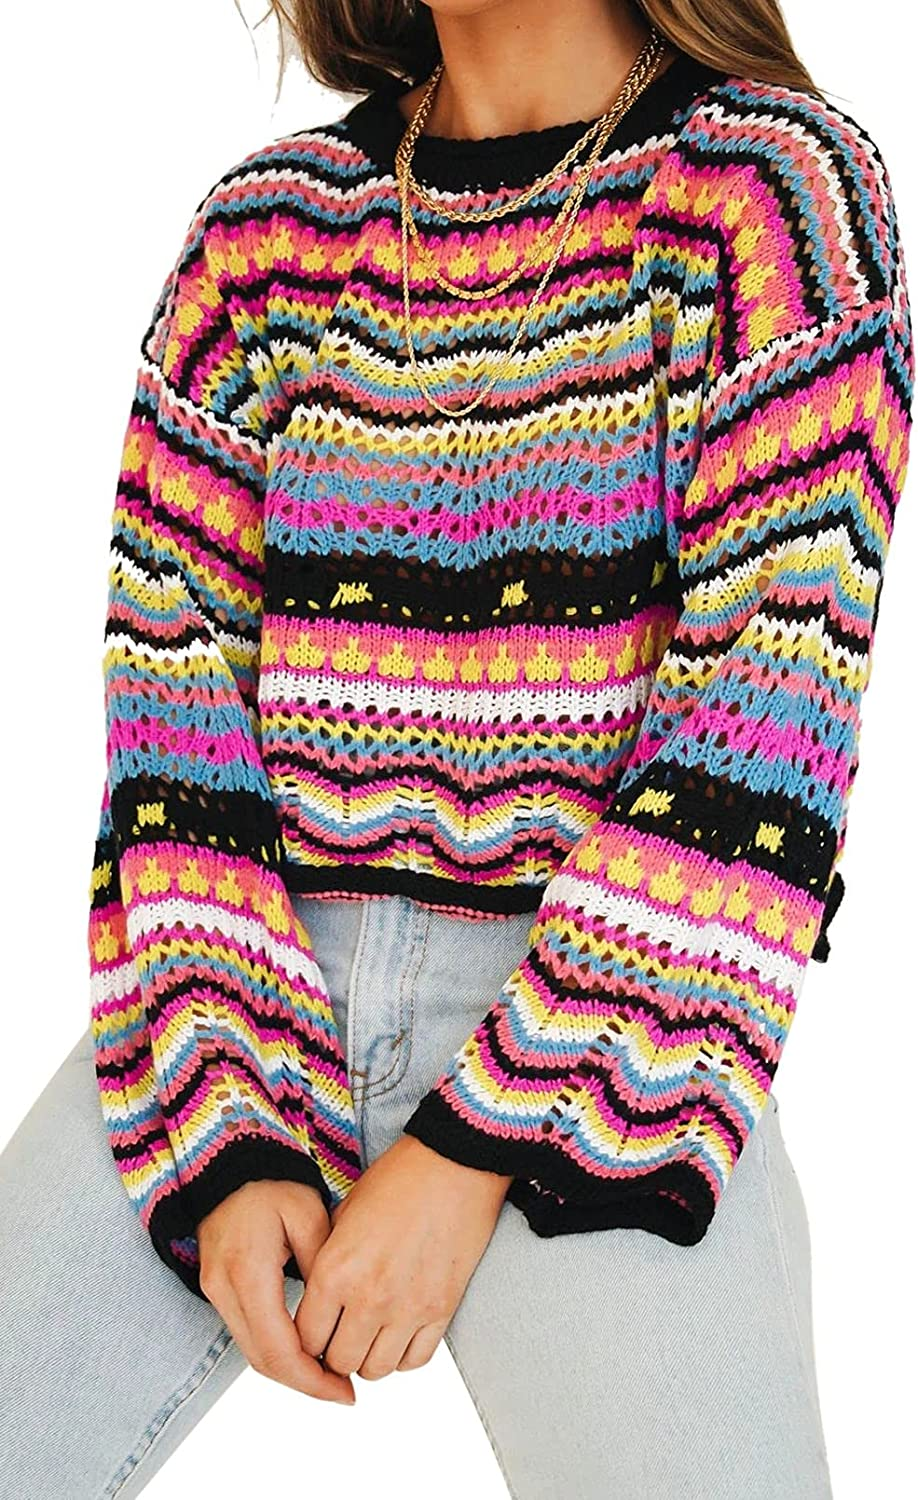 Linsery Women Y2k Crochet Sweater Round Neck Flare Sleeve Color Striped Pullover Jumper Tops